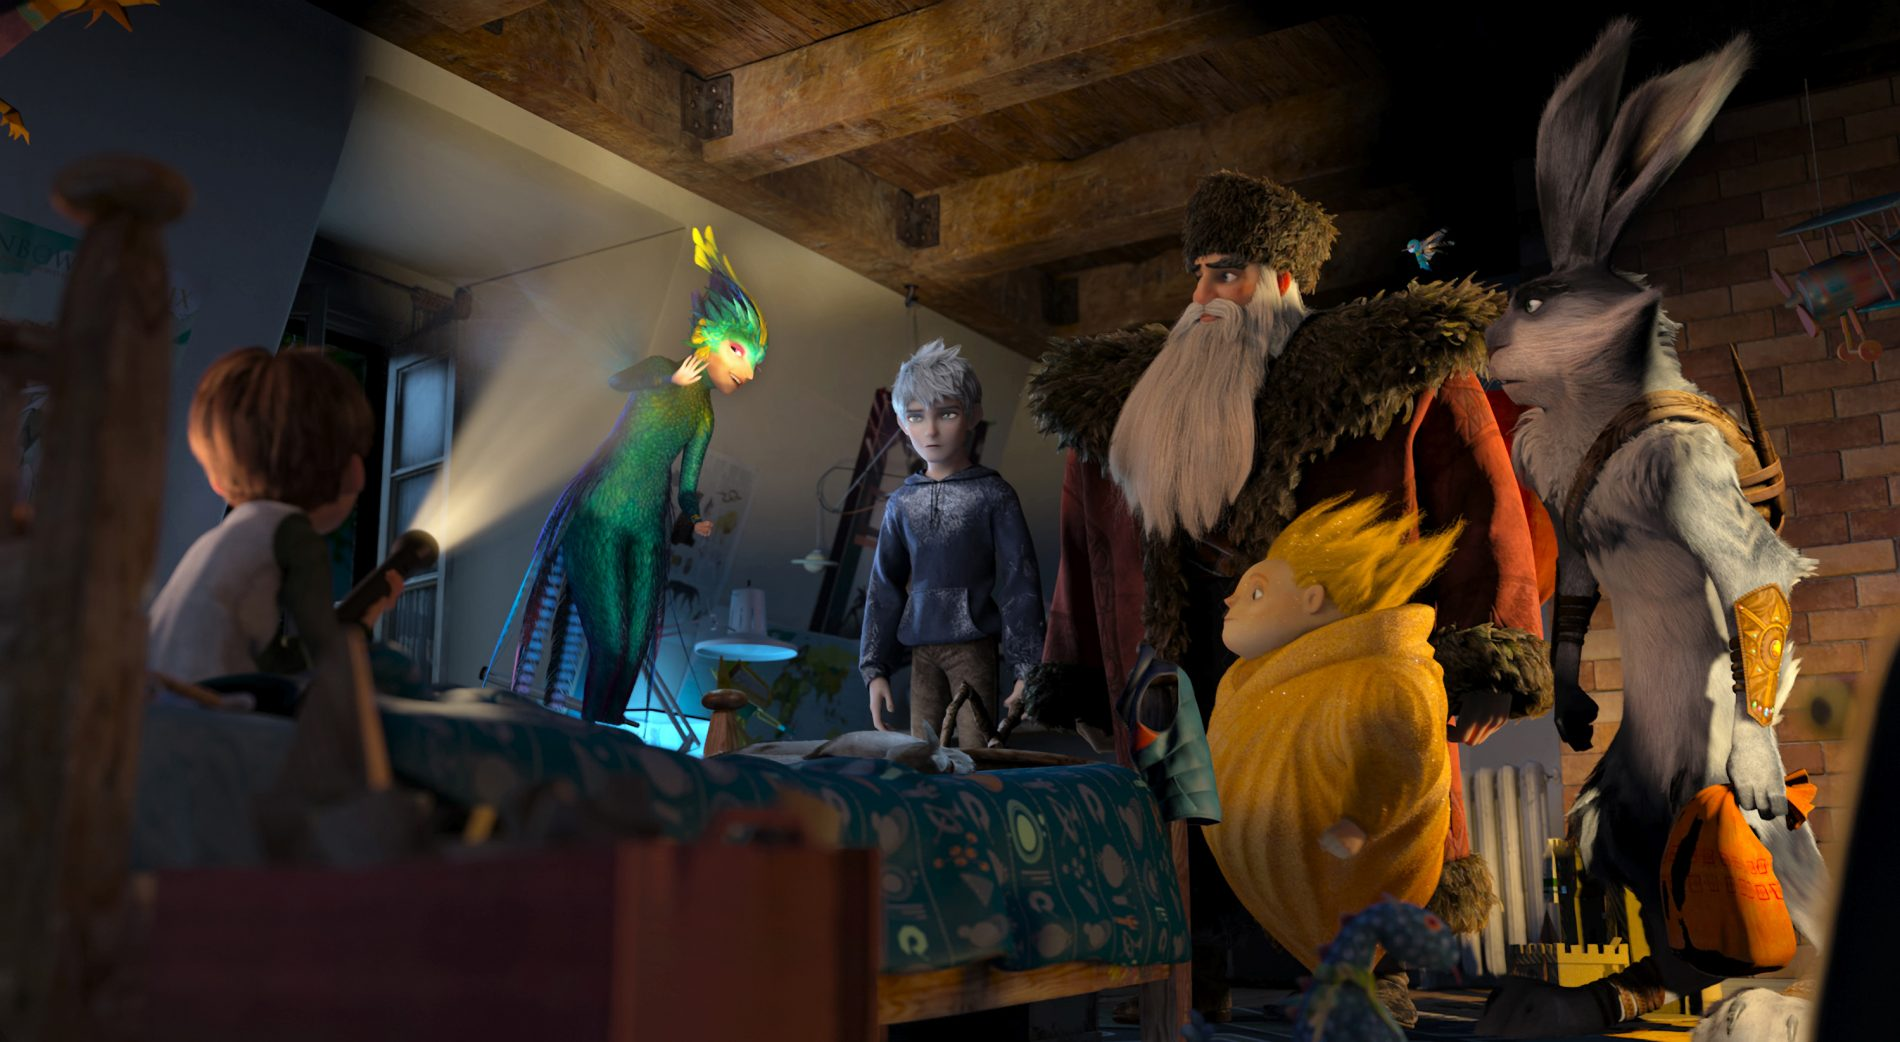 Win 1 of 3 'Rise of the Guardians' DVDs